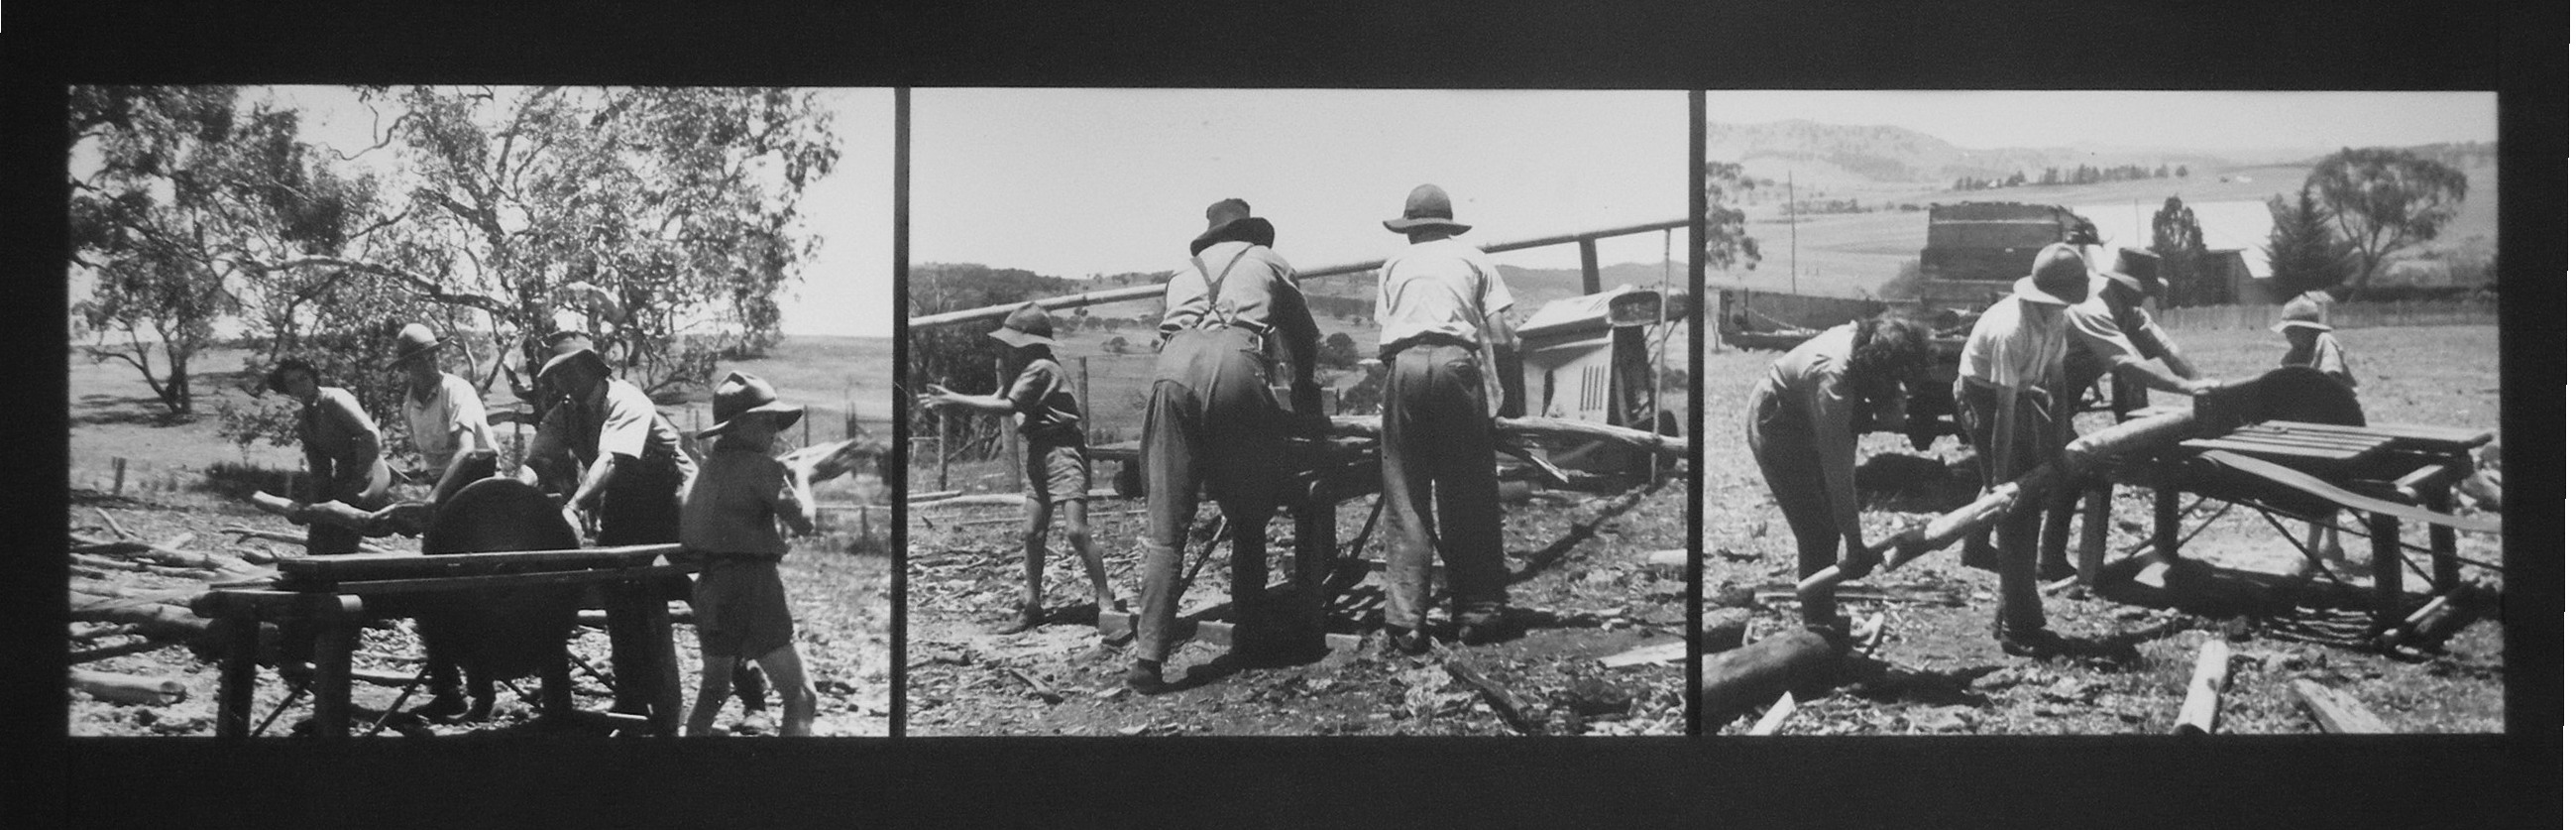 Early days - cutting fire wood